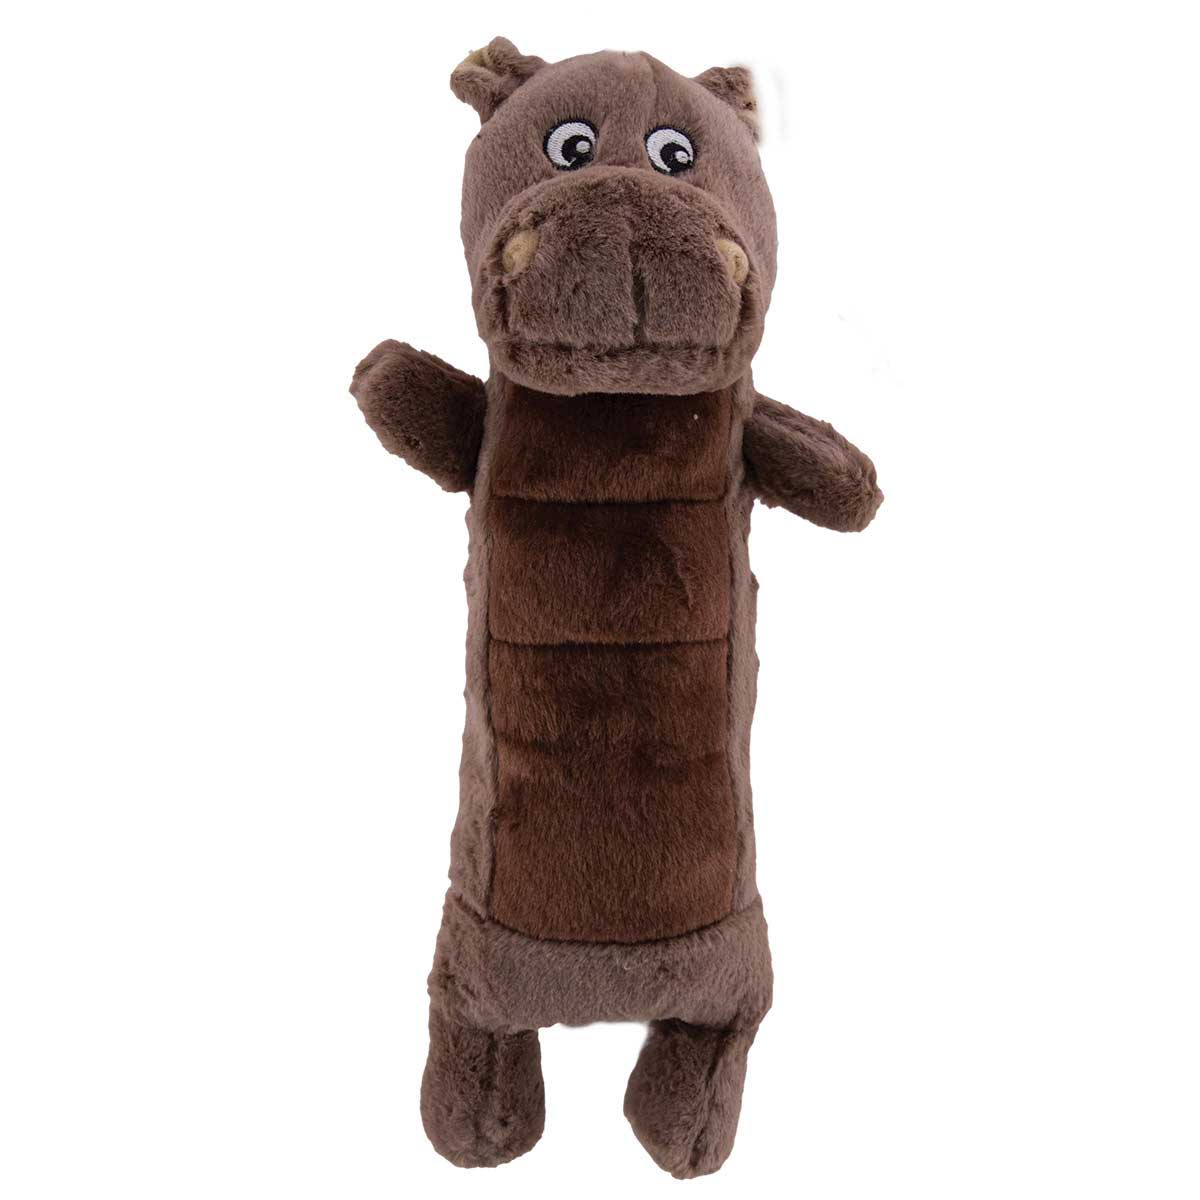 Dawgeee Toy Plush Hippo for Dogs - 12 inches tall